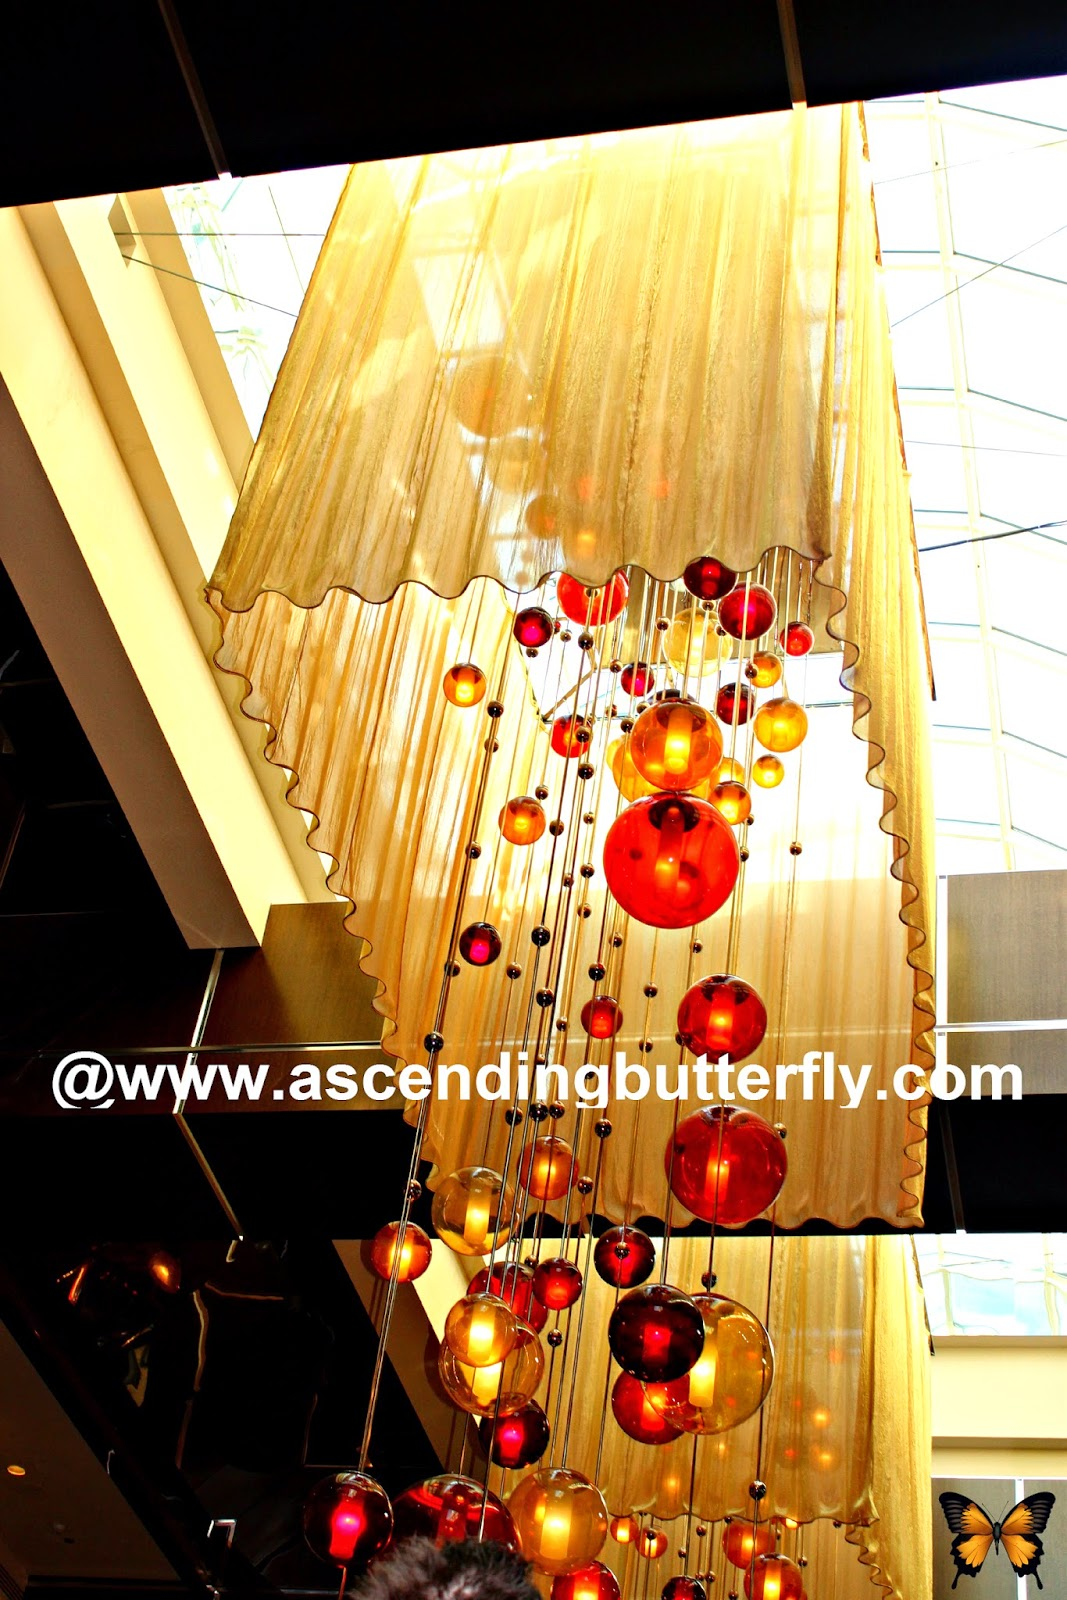 Atlantic City, Visit AC, Atlantic City Alliance, DO AC, Golden Nugget Casino Chandelier